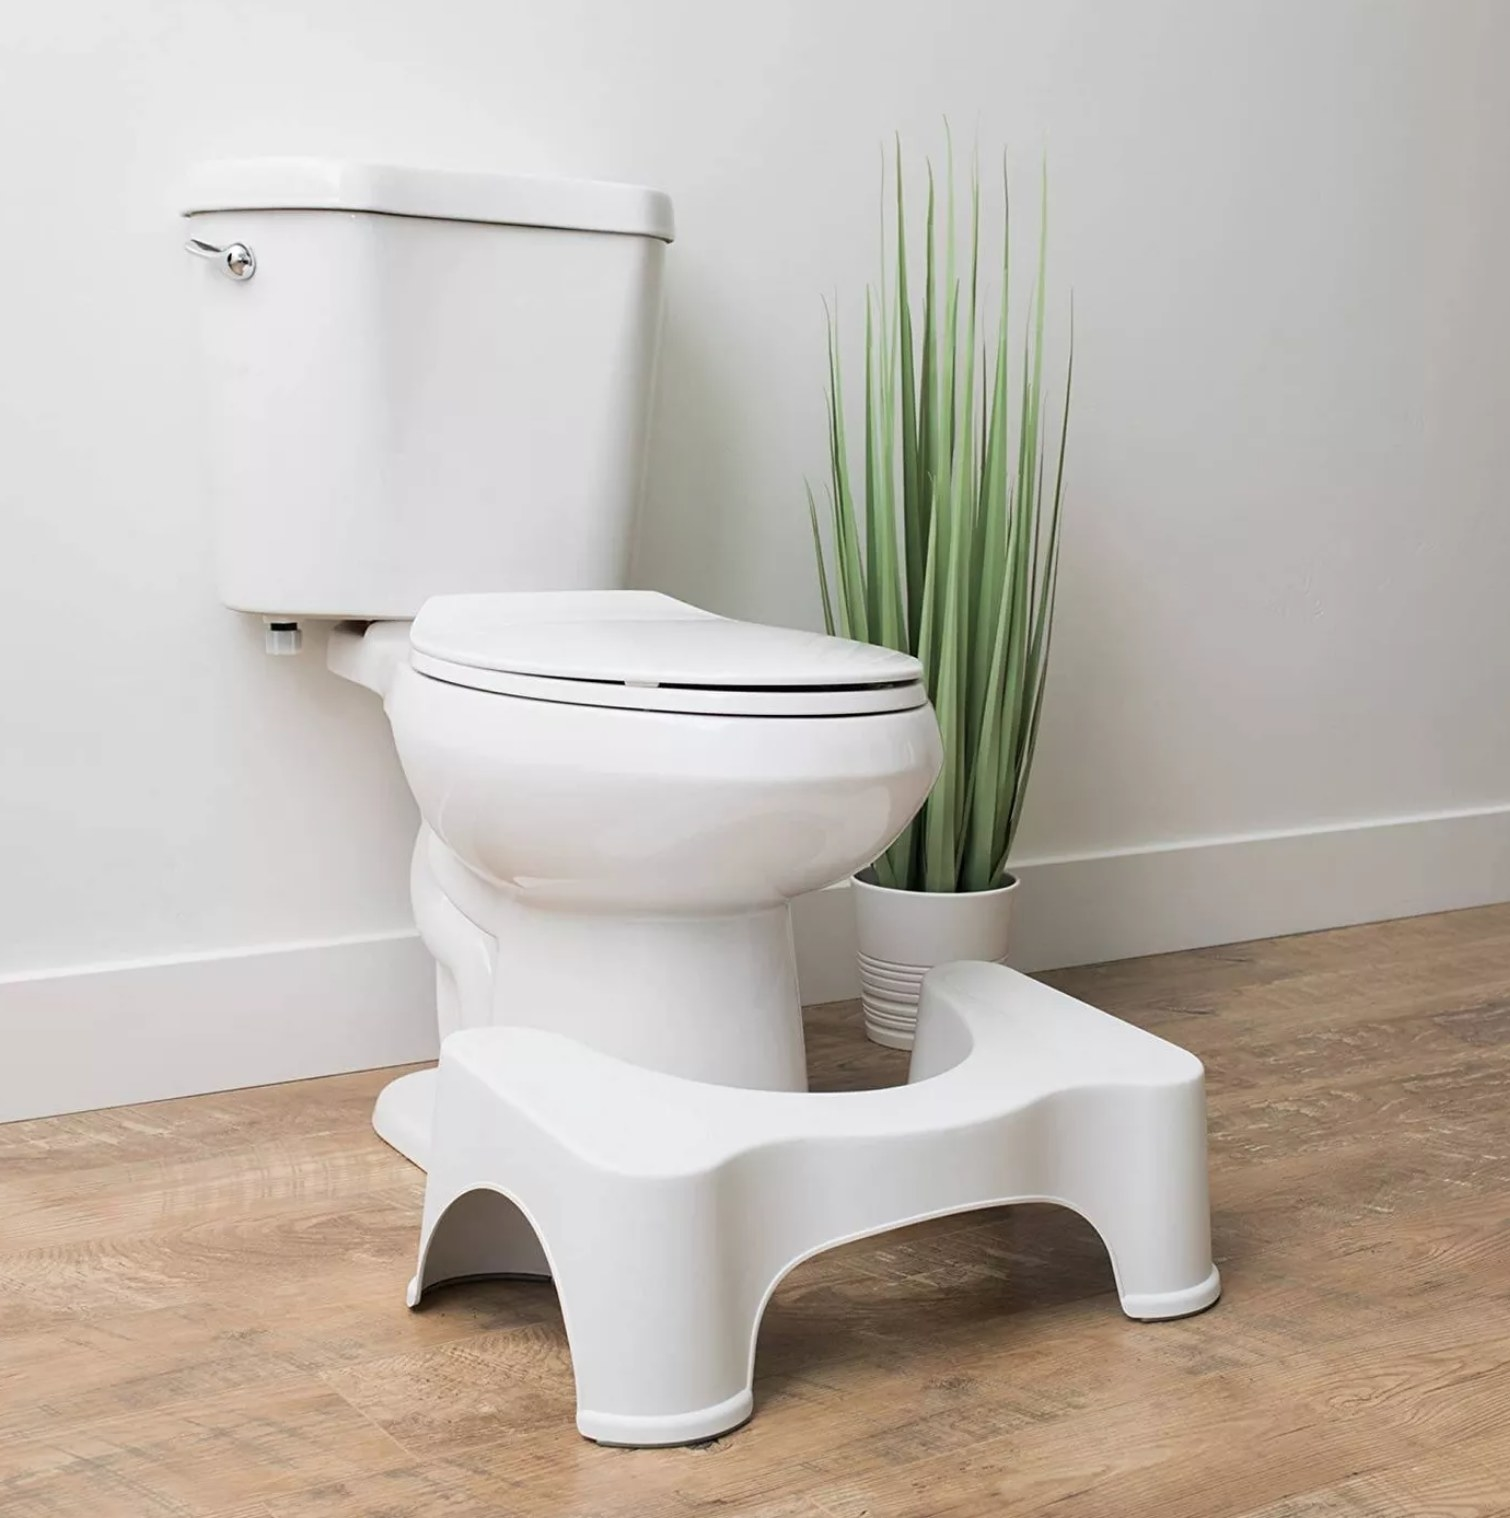 the squatty potty next to a toilet with a plant